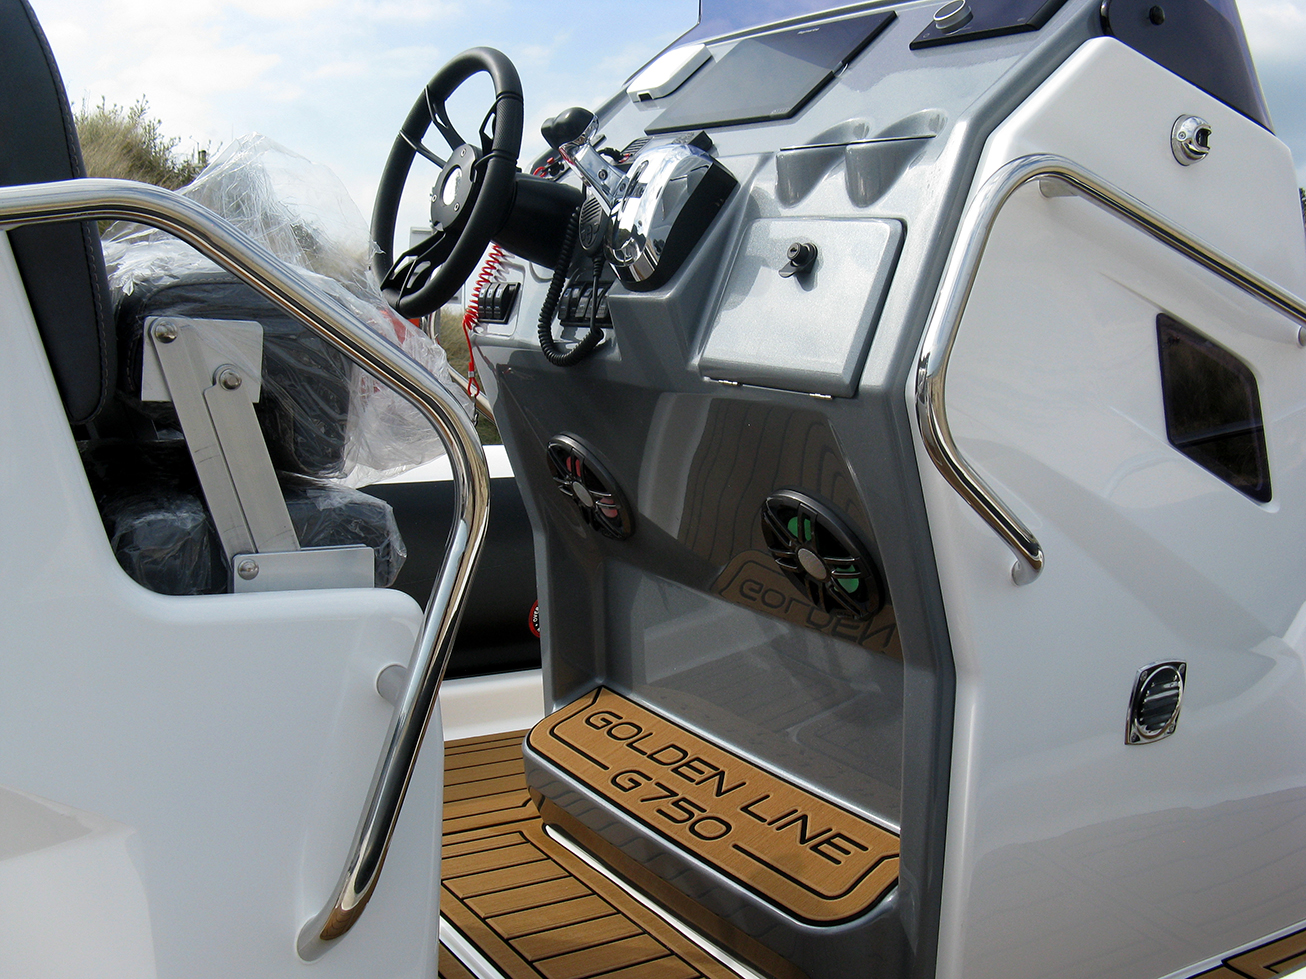 Grand G750 RIB for sale at Harbour Marine Pwllheli